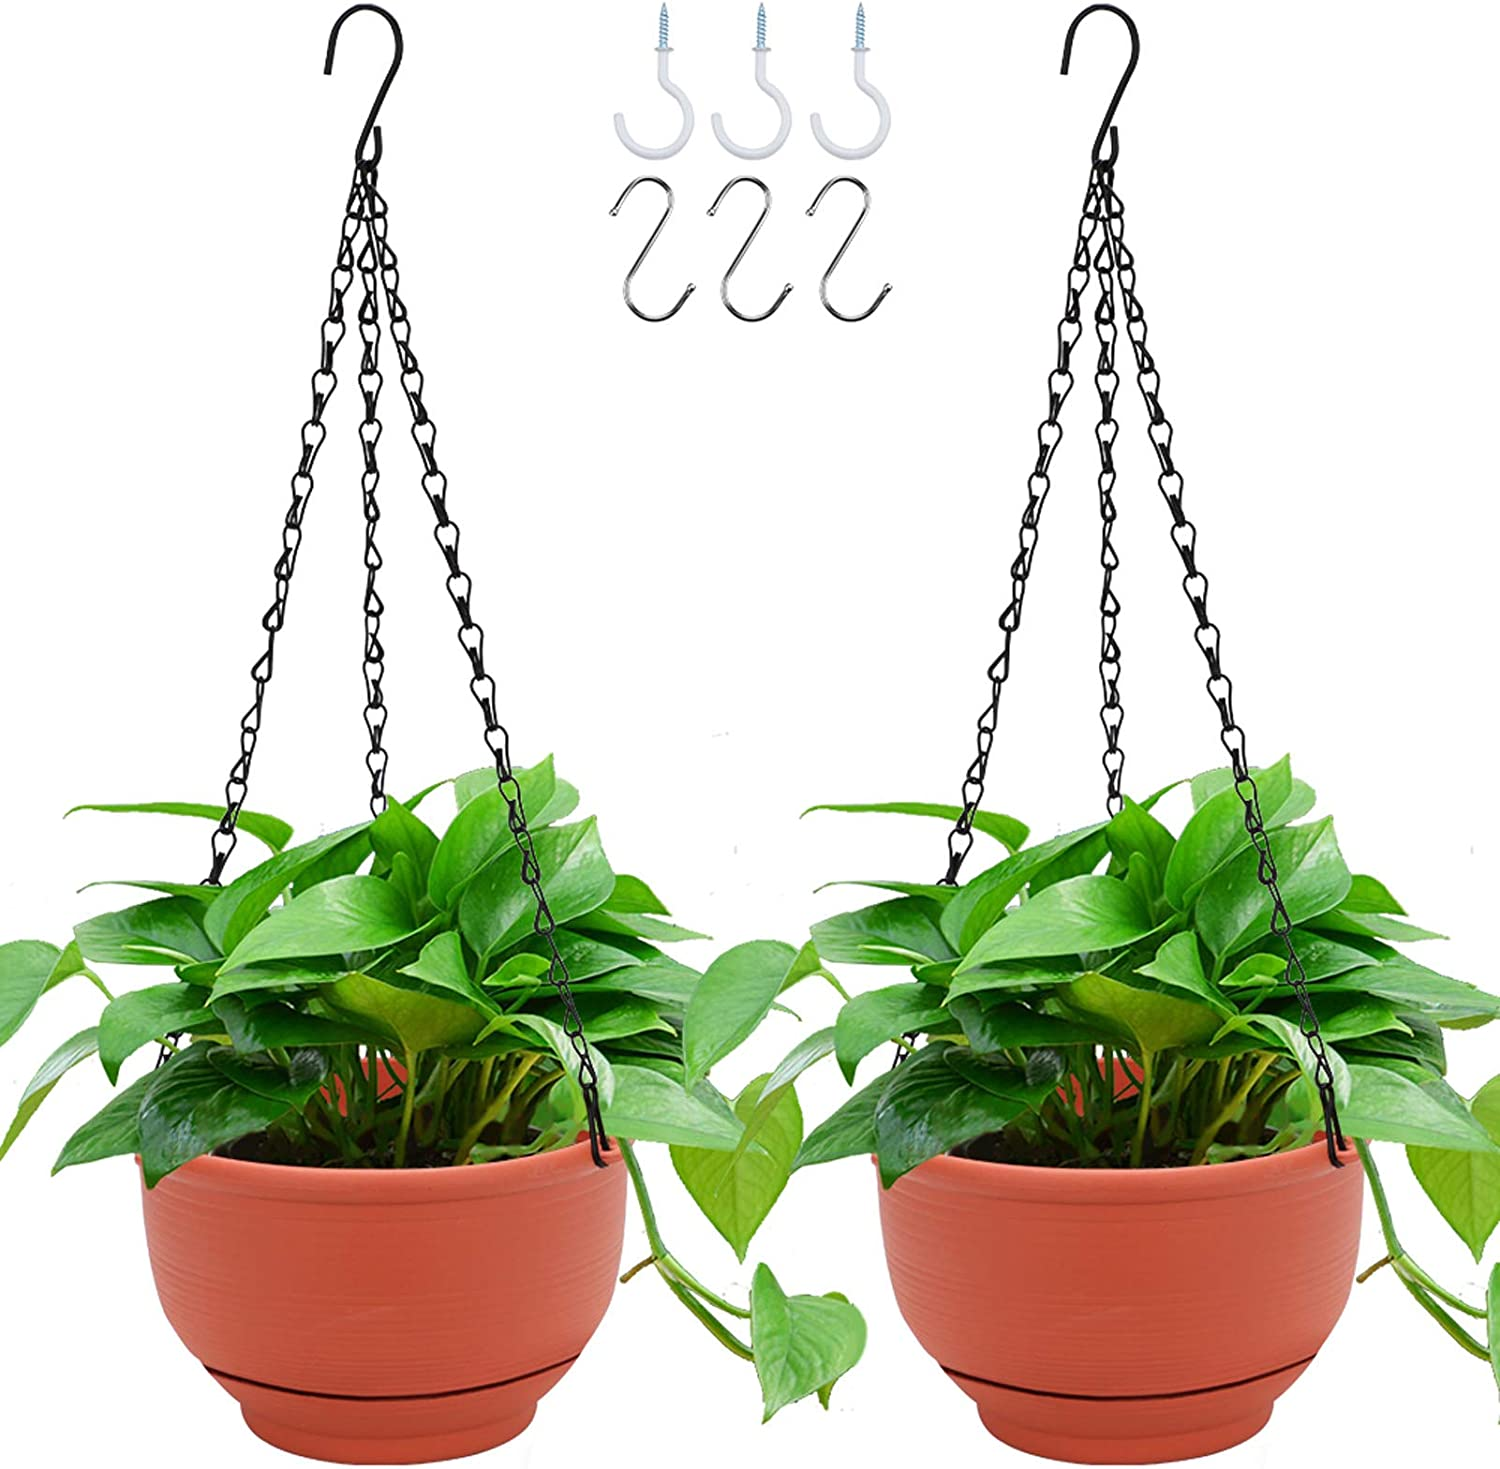 GROWNEER 2 Packs 8 Inches Plastic Hanging Planter Self Watering Basket with 6 Pcs Hooks, Hanging Flower Pot with Detachable Base for Garden Indoor Outdoor Home Decoration (Terracotta Color)